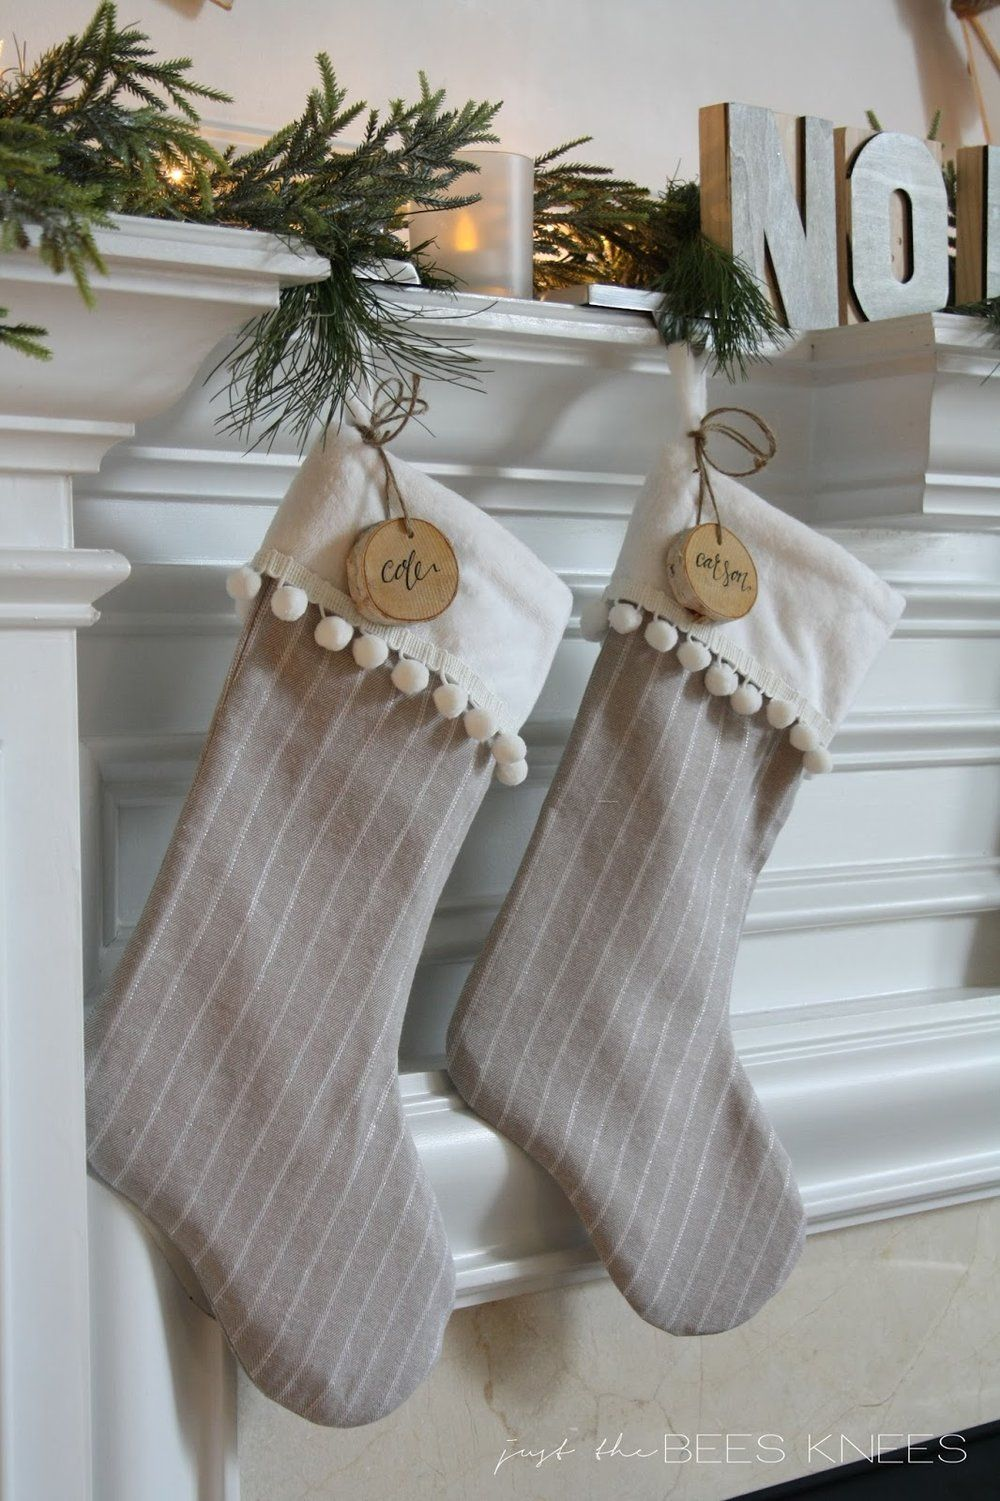 23 DIY Christmas Stockings - How to Make Christmas Stockings Craft ...